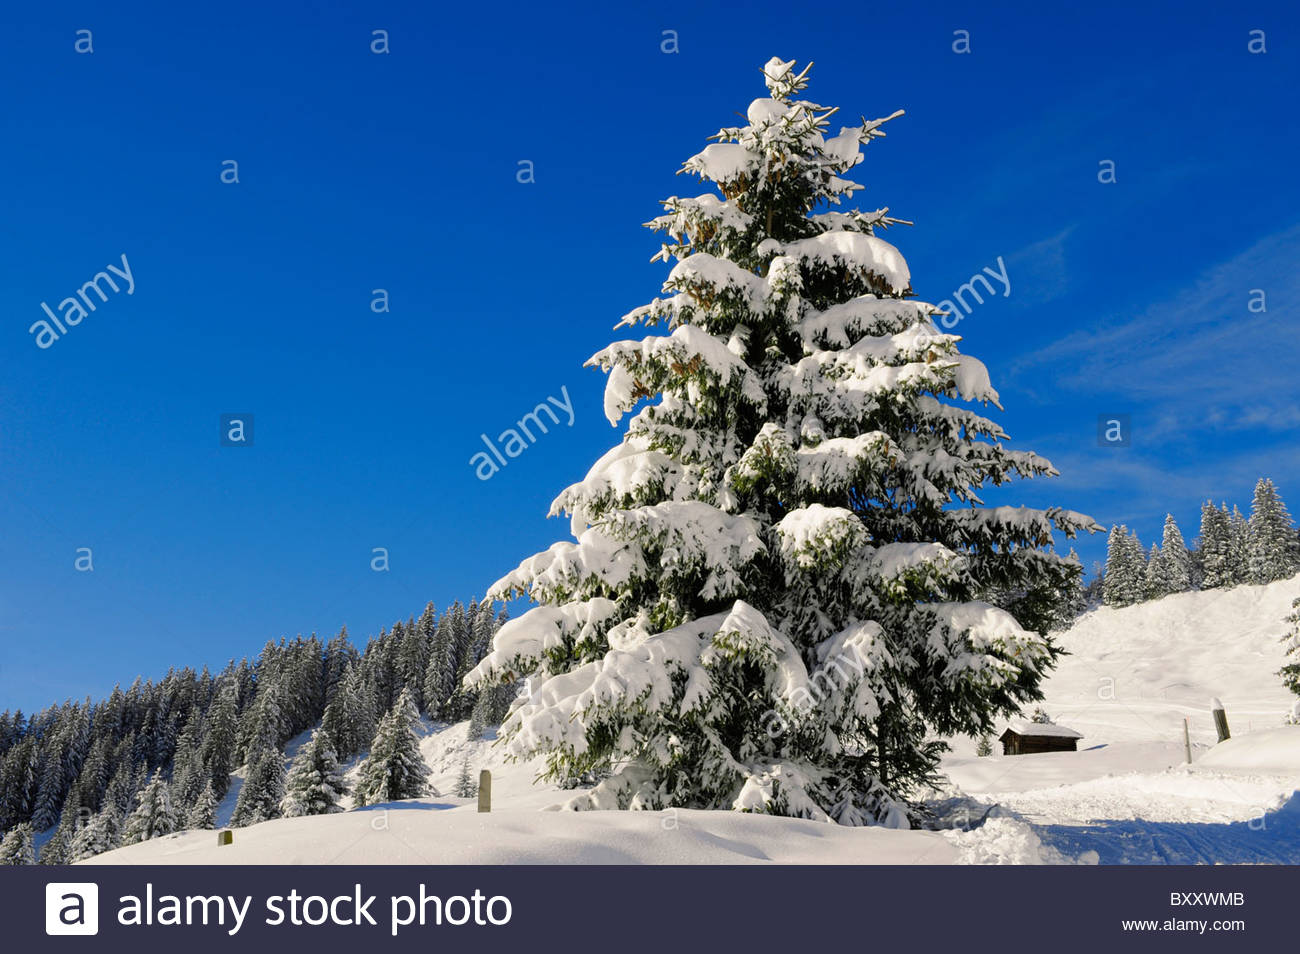 Pine trees in the snow at Grindelwald First - Stock Image